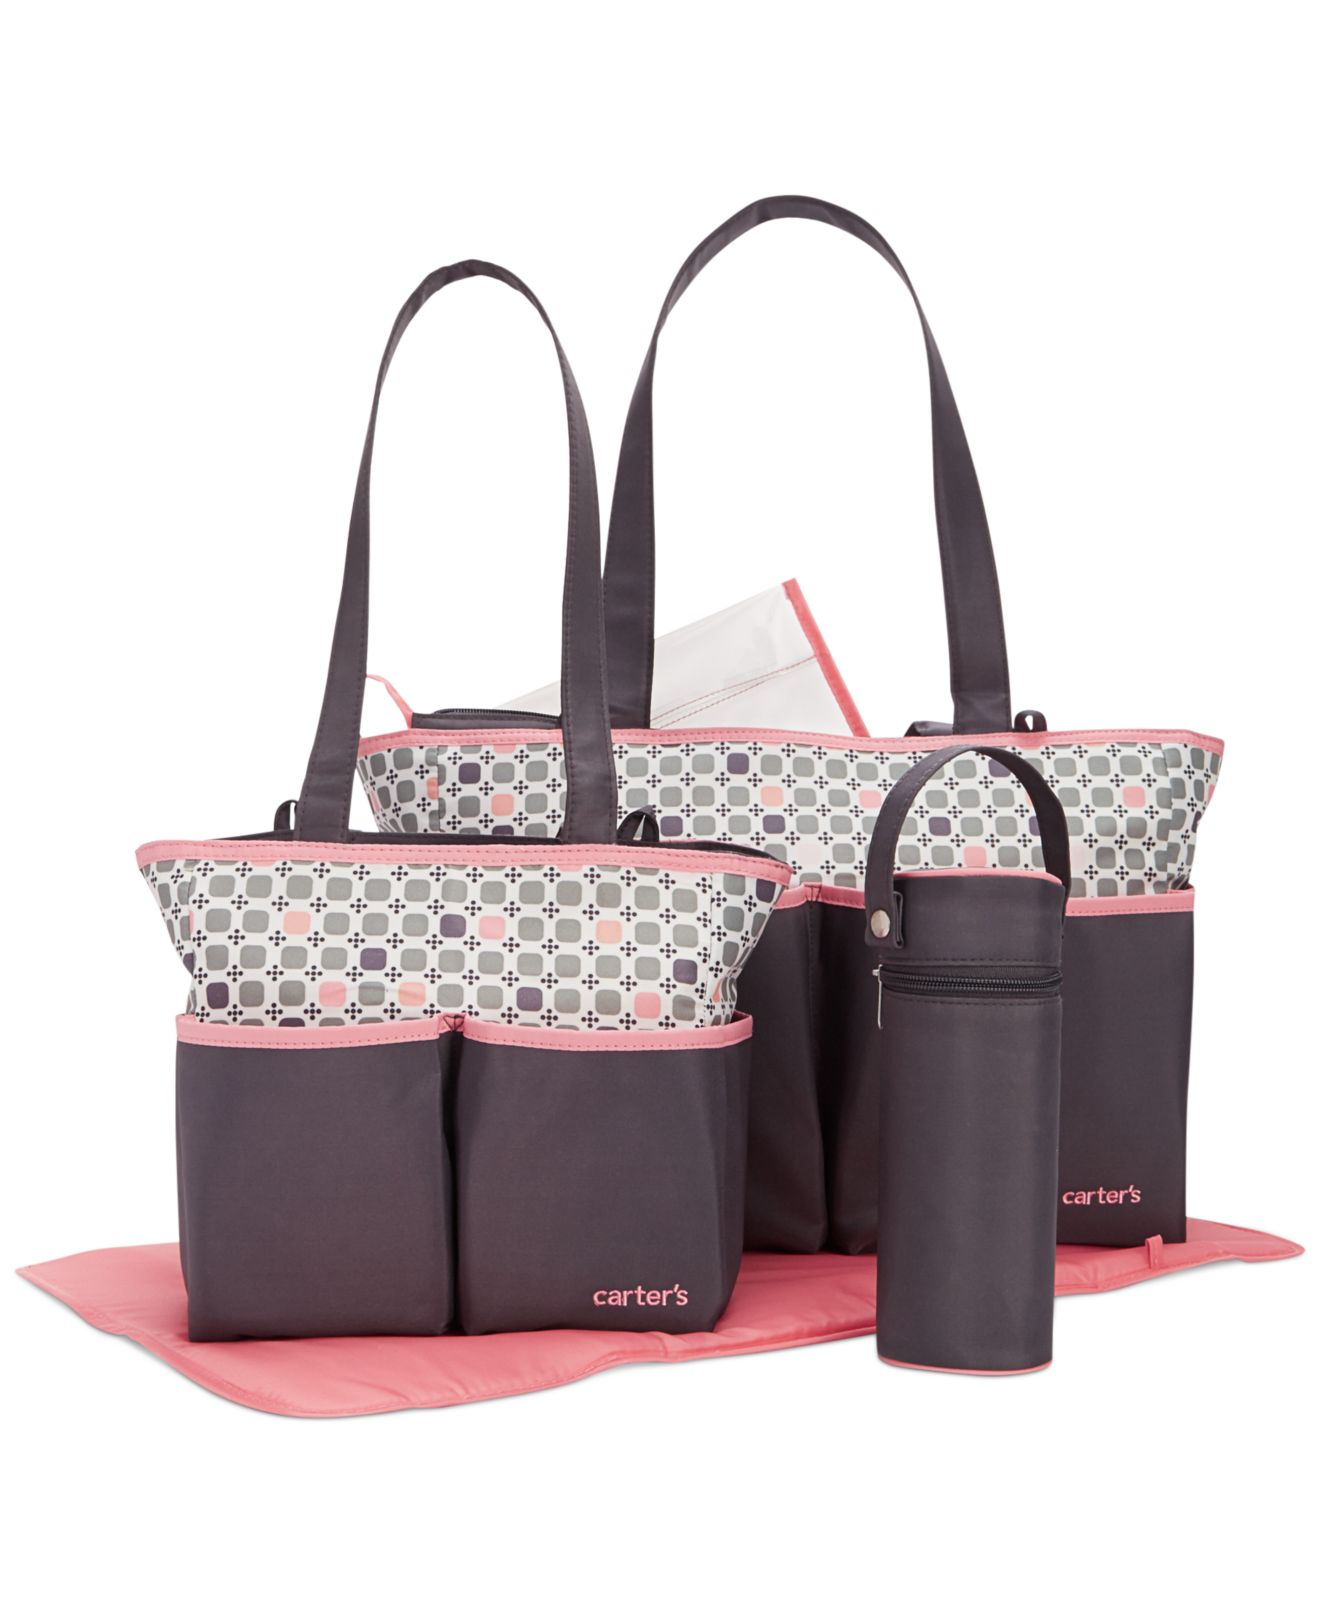 coach diaper bag outlet omyt  Coach Sale Bags At Macy's